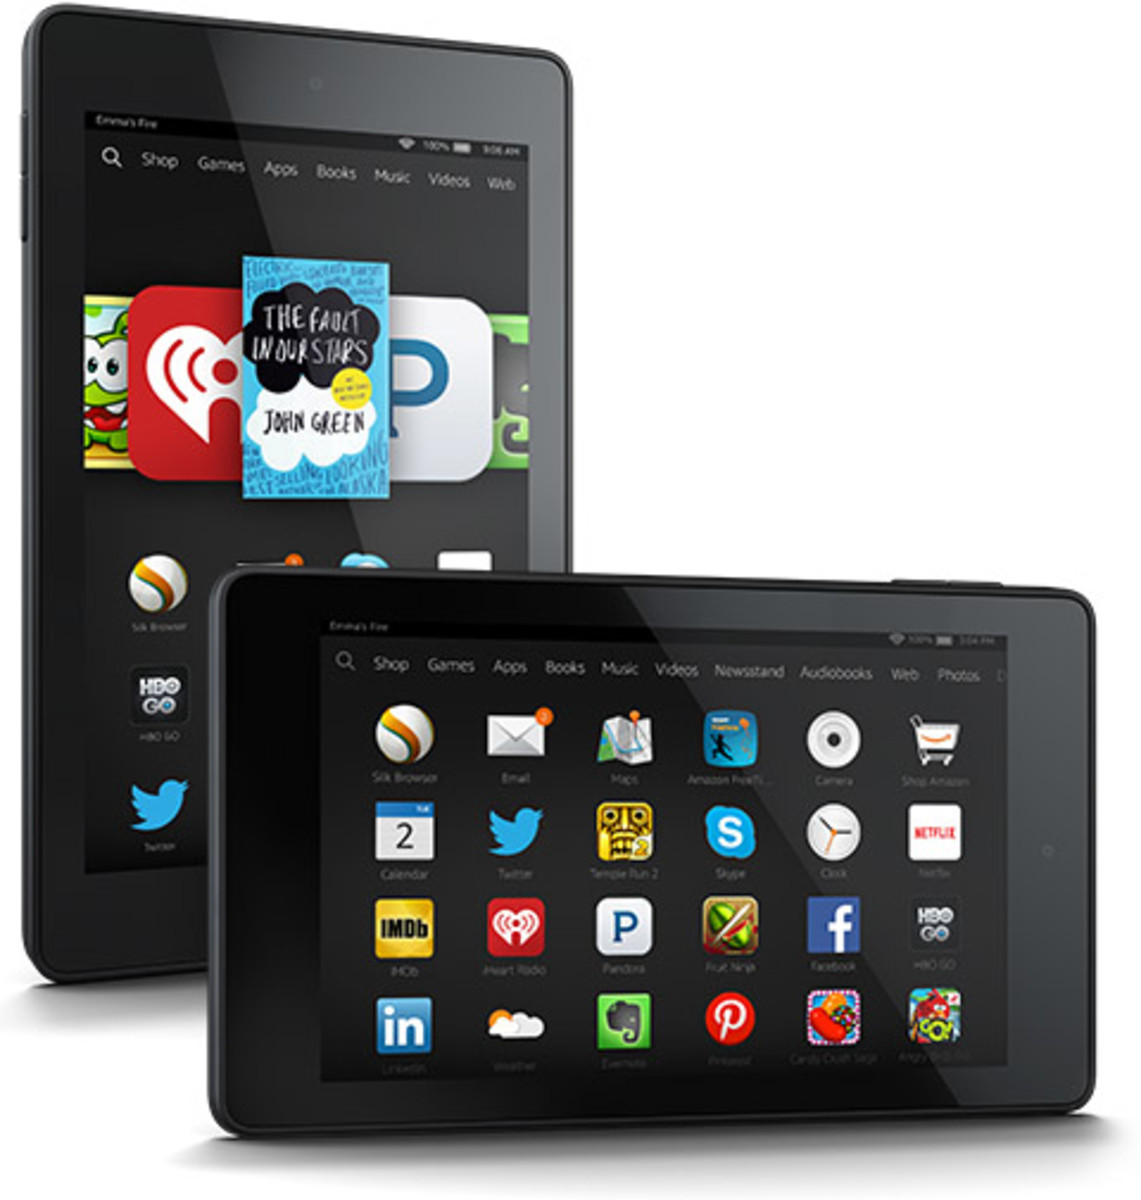 Troubleshooting Kindle Fire Problems